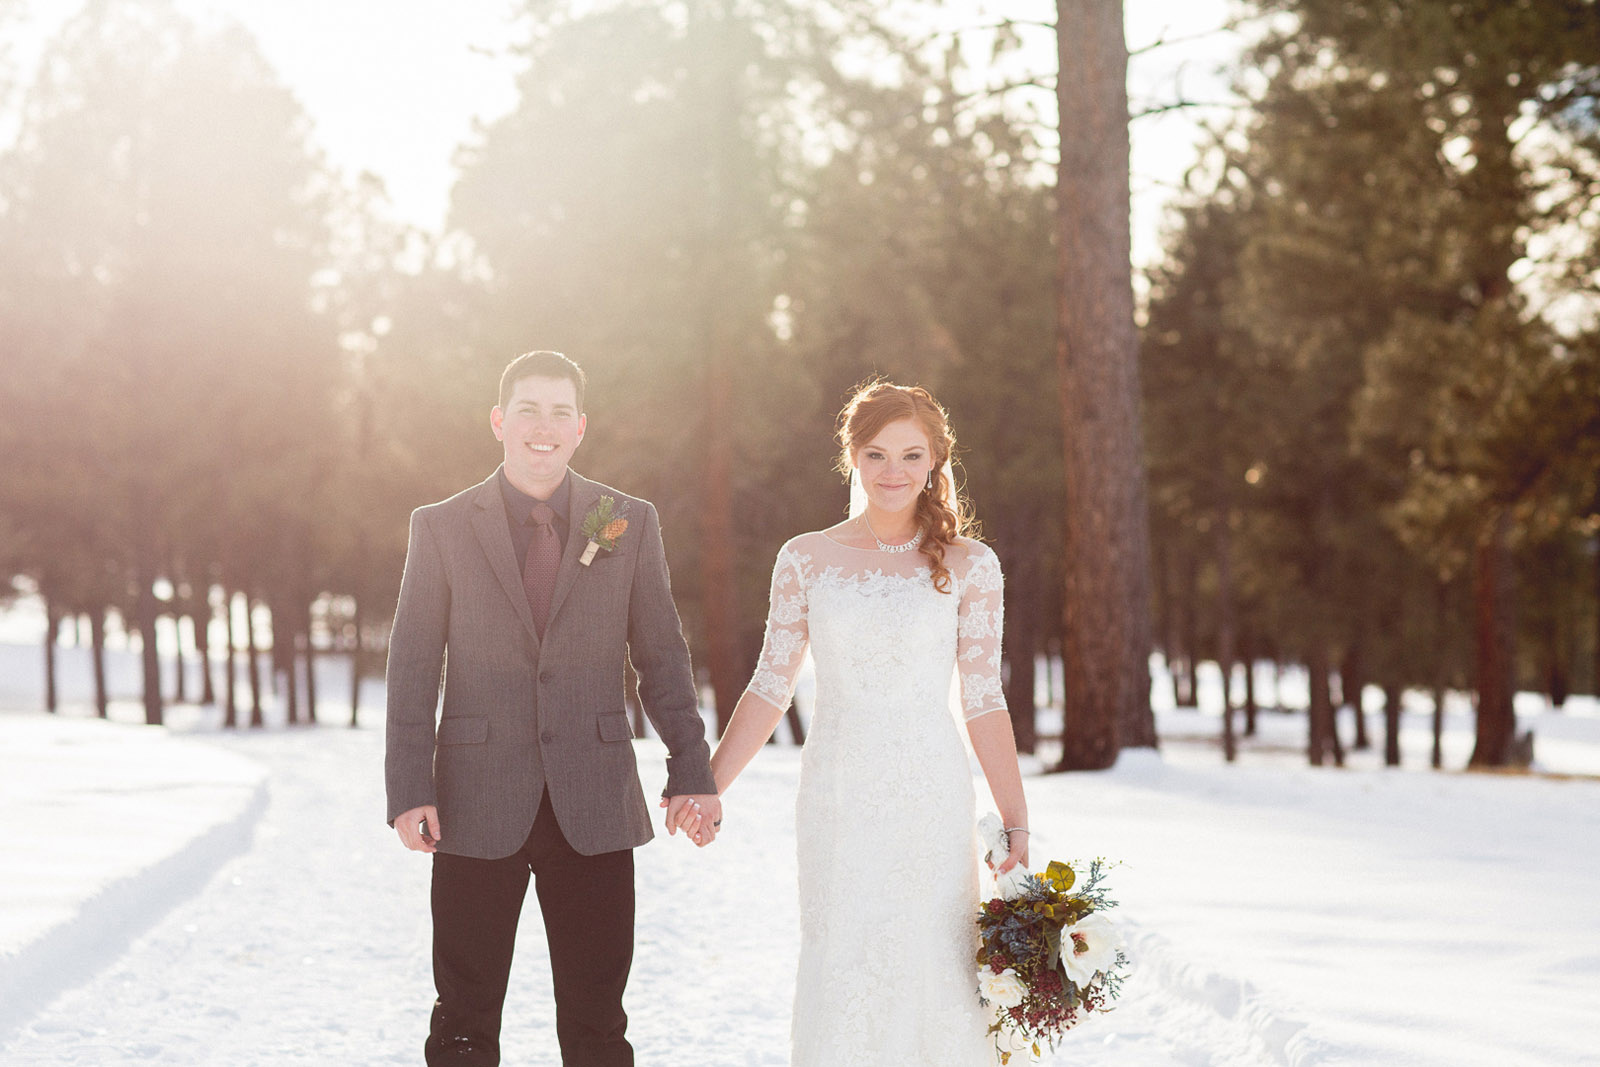 149-wedding-photographer-captures-newlyweds-in-snow-during-a-winter-snow-wedding-in-the-mountains-in-colorado